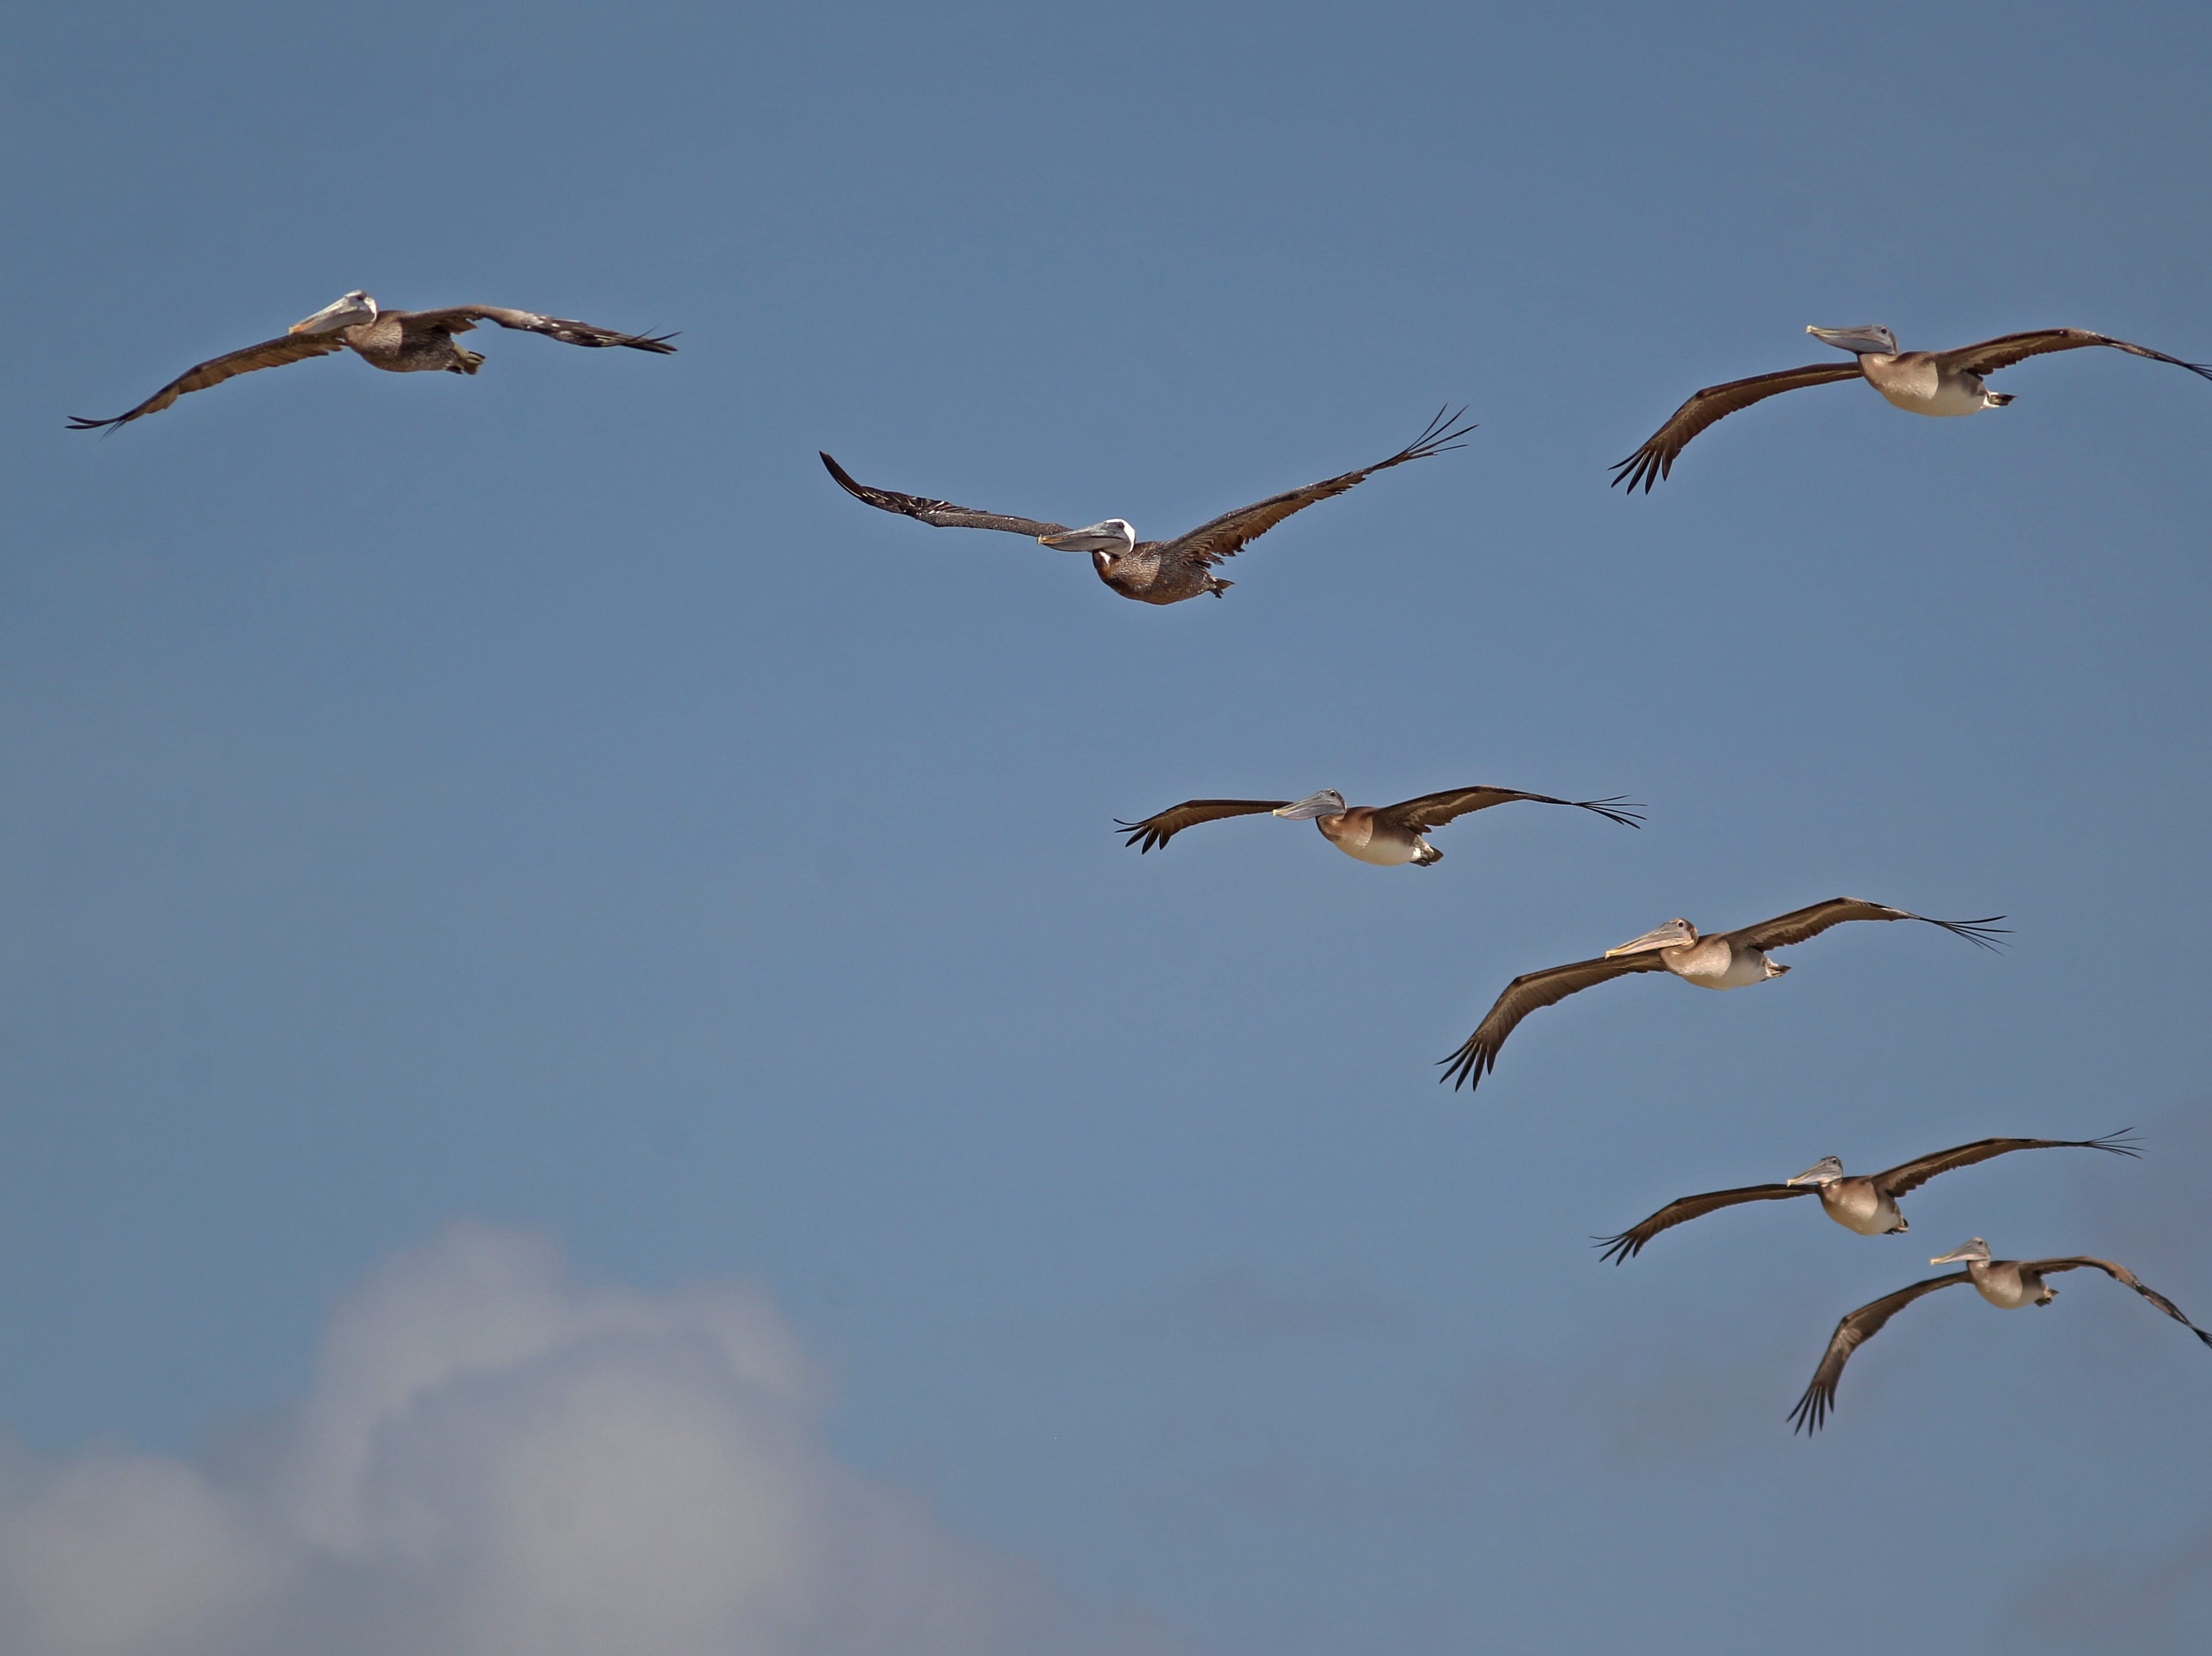 Flocks of the icon brown pelican frequently are spotted sailing over the dunes of Padre Island National Seashore.